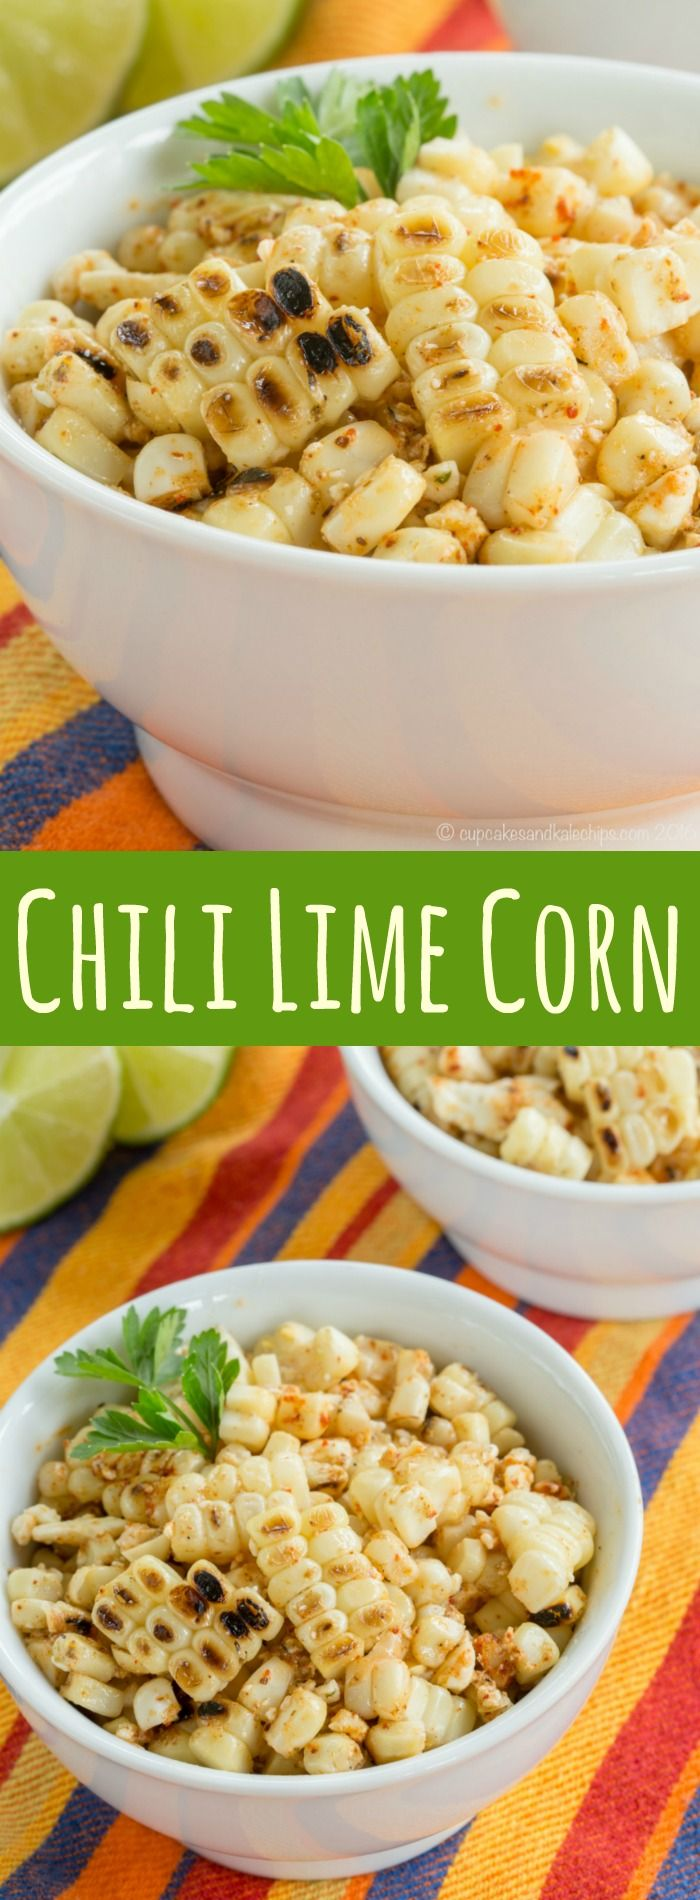 Chili Lime Corn - a simple summer side dish recipe inspired by a dish from a Bobby Flay restaurant that's just a little smoky and spicy. Gluten free and vegetarian. | cupcakesandkalechips.com